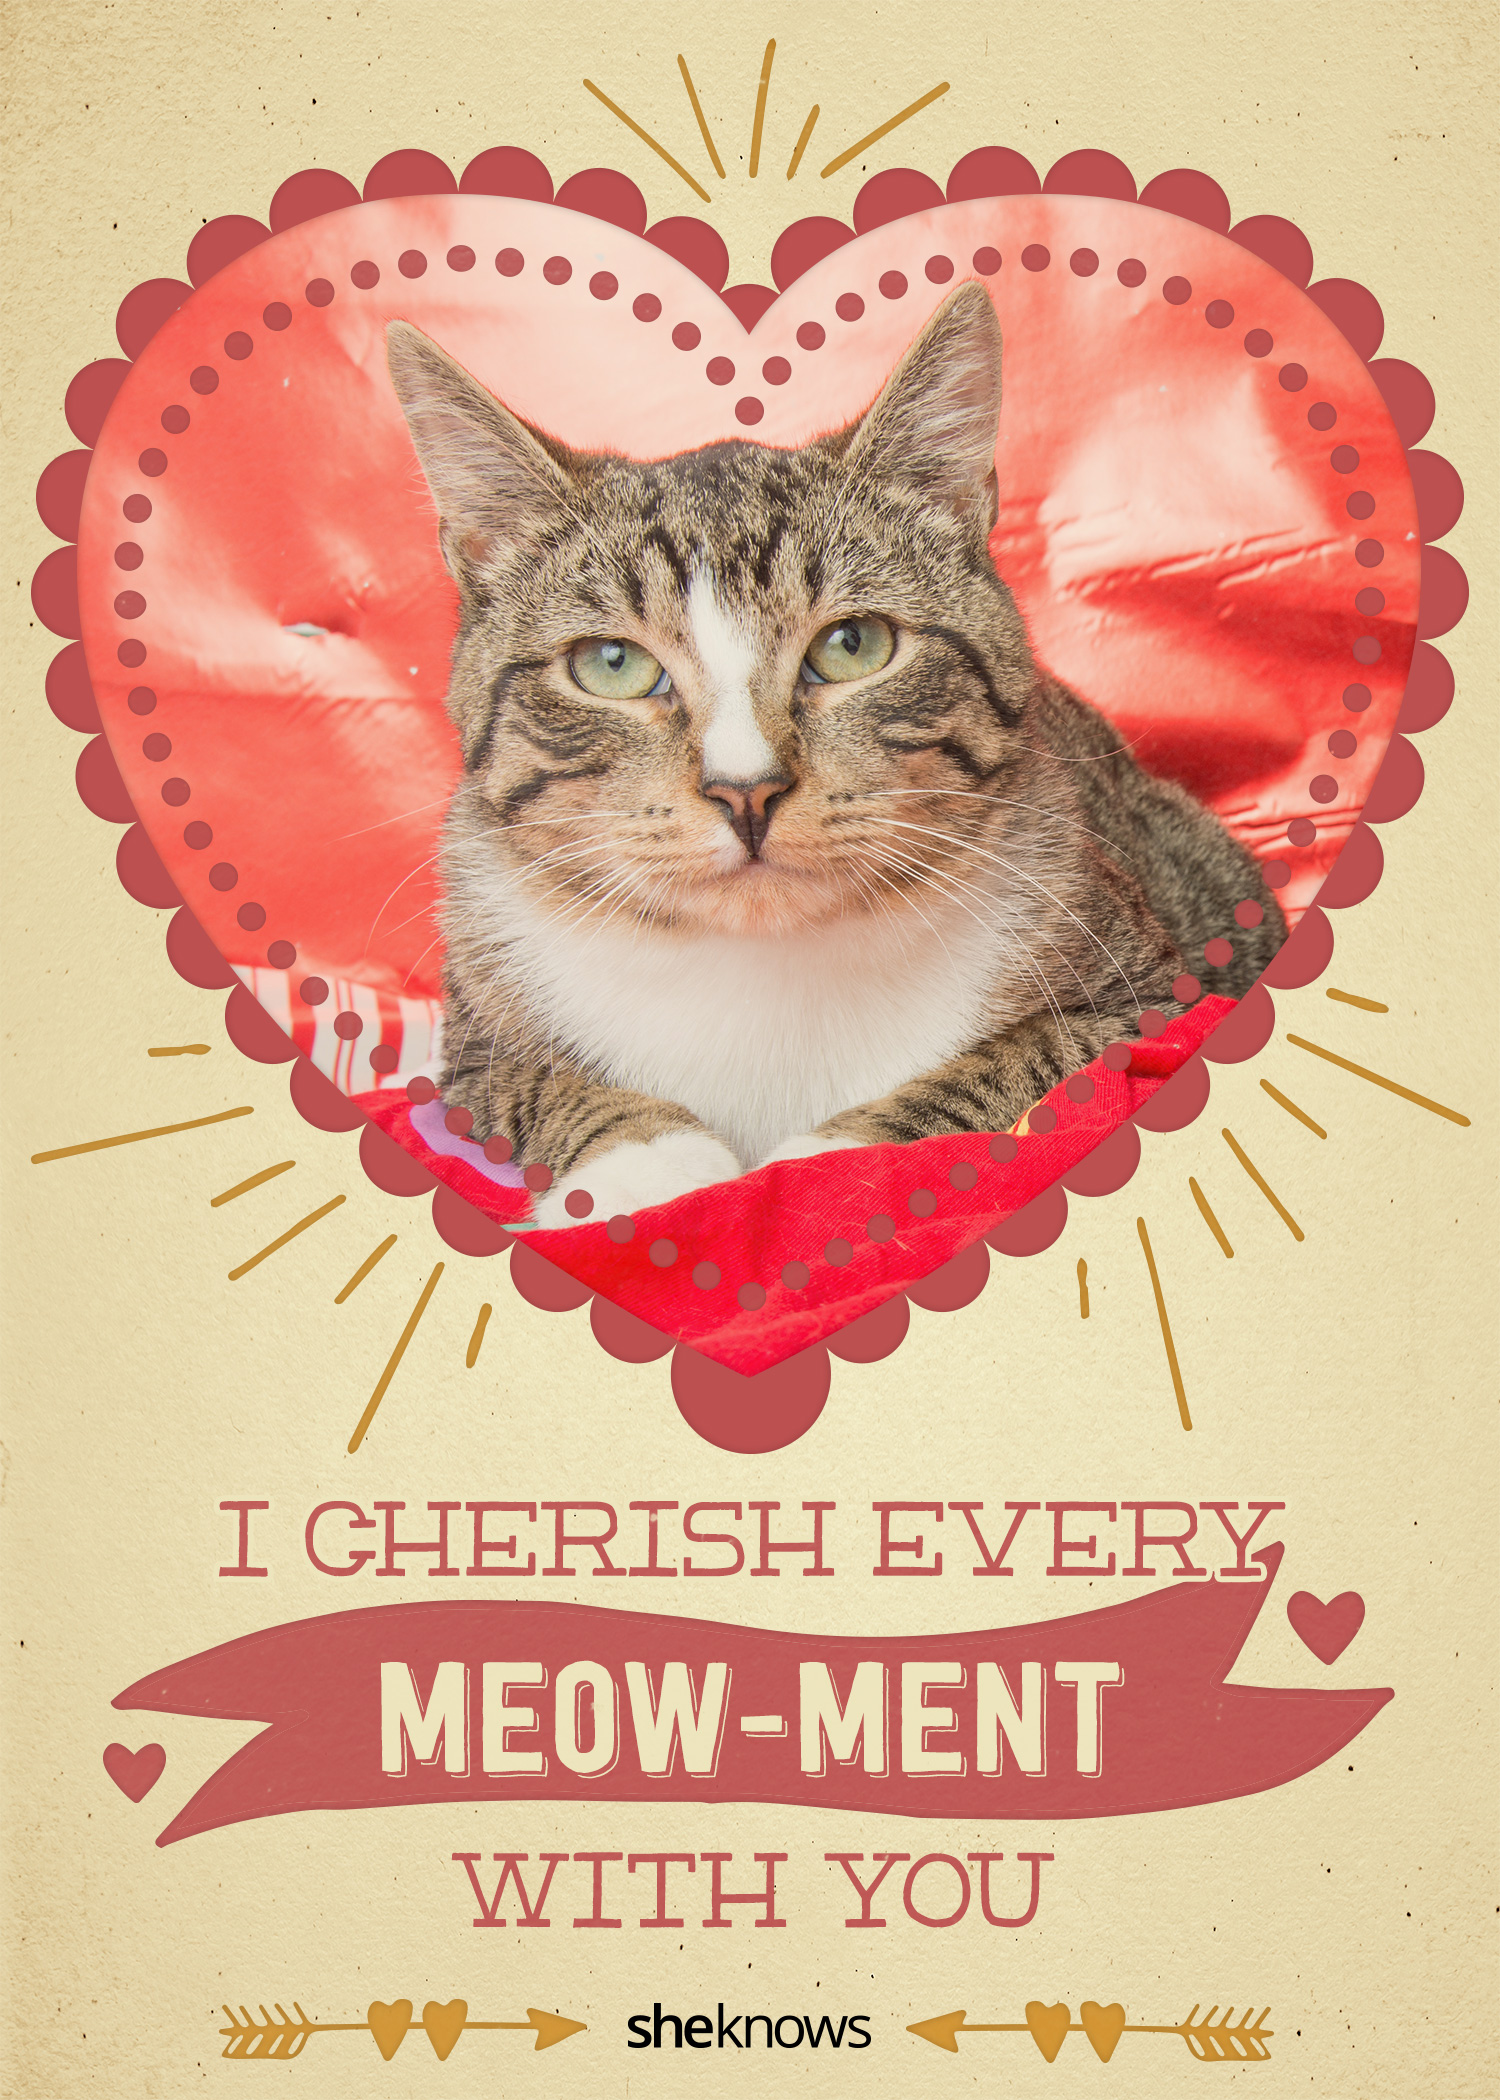 12 kittycat valentine's day cards that will make you aww